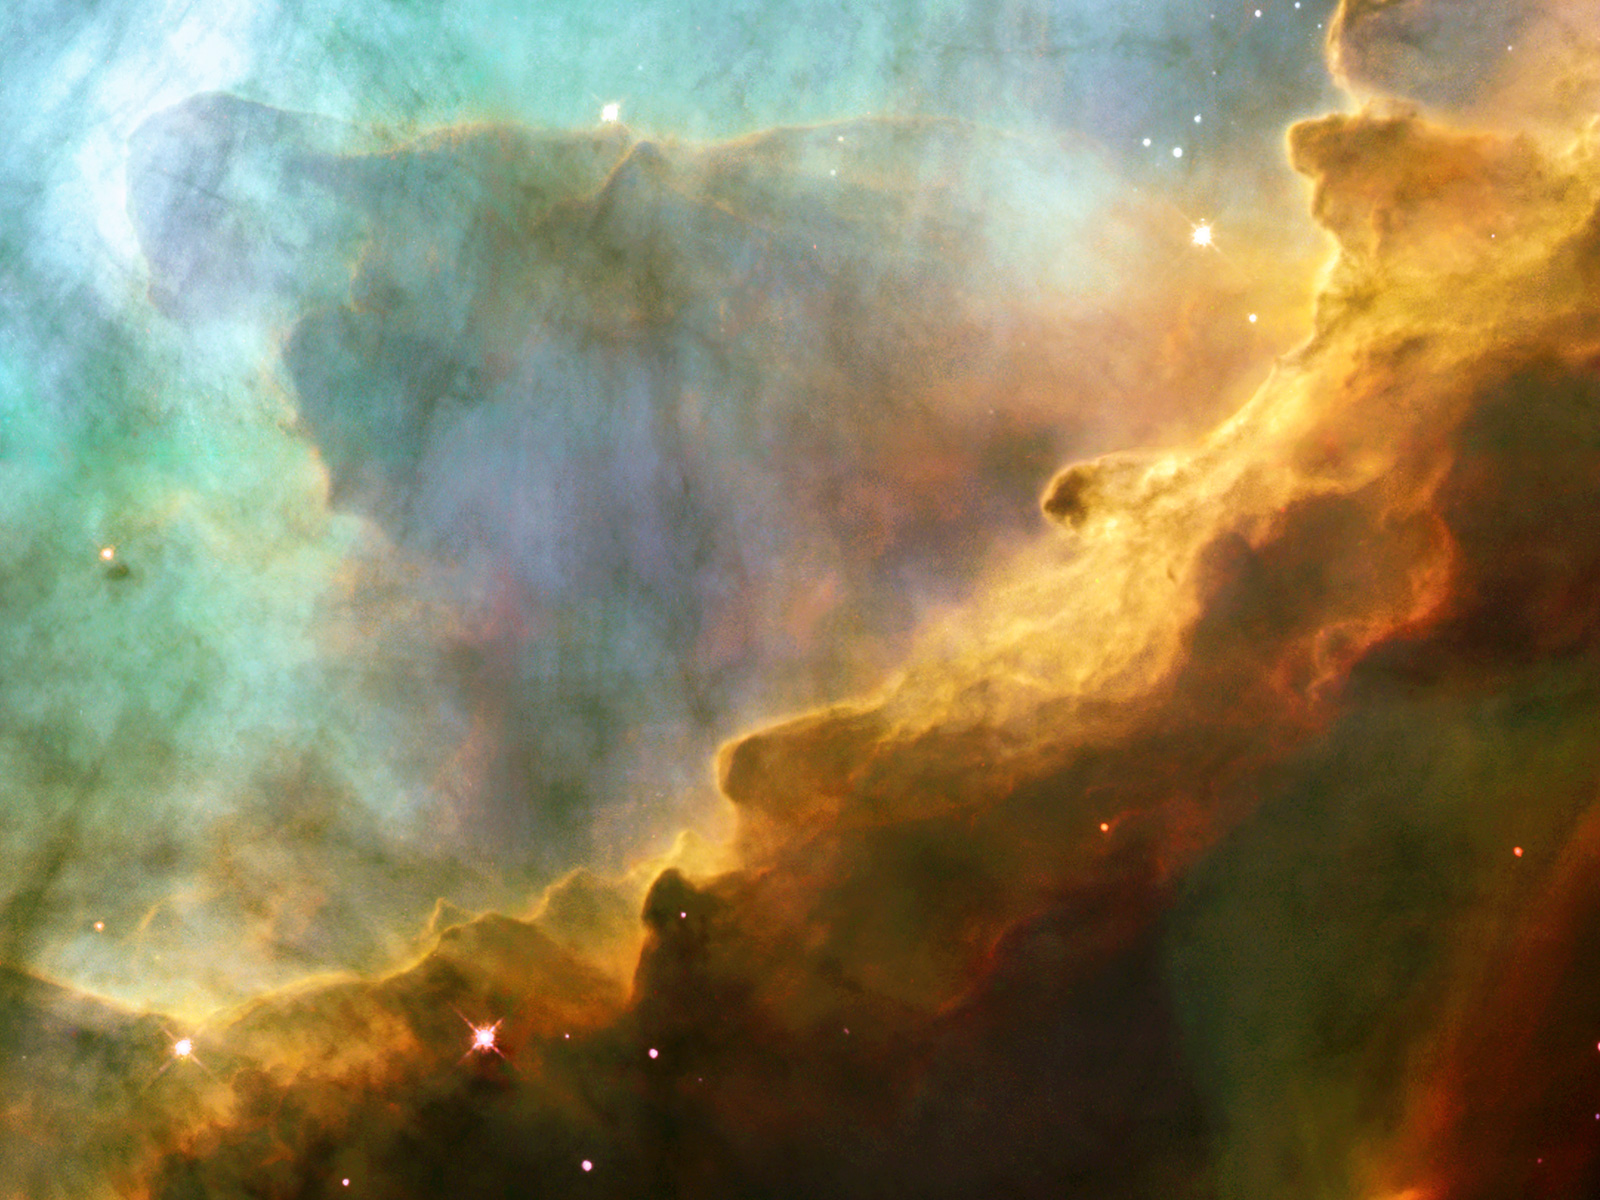 Hubble Wallpaper   Space Wallpaper 647489 1600x1200